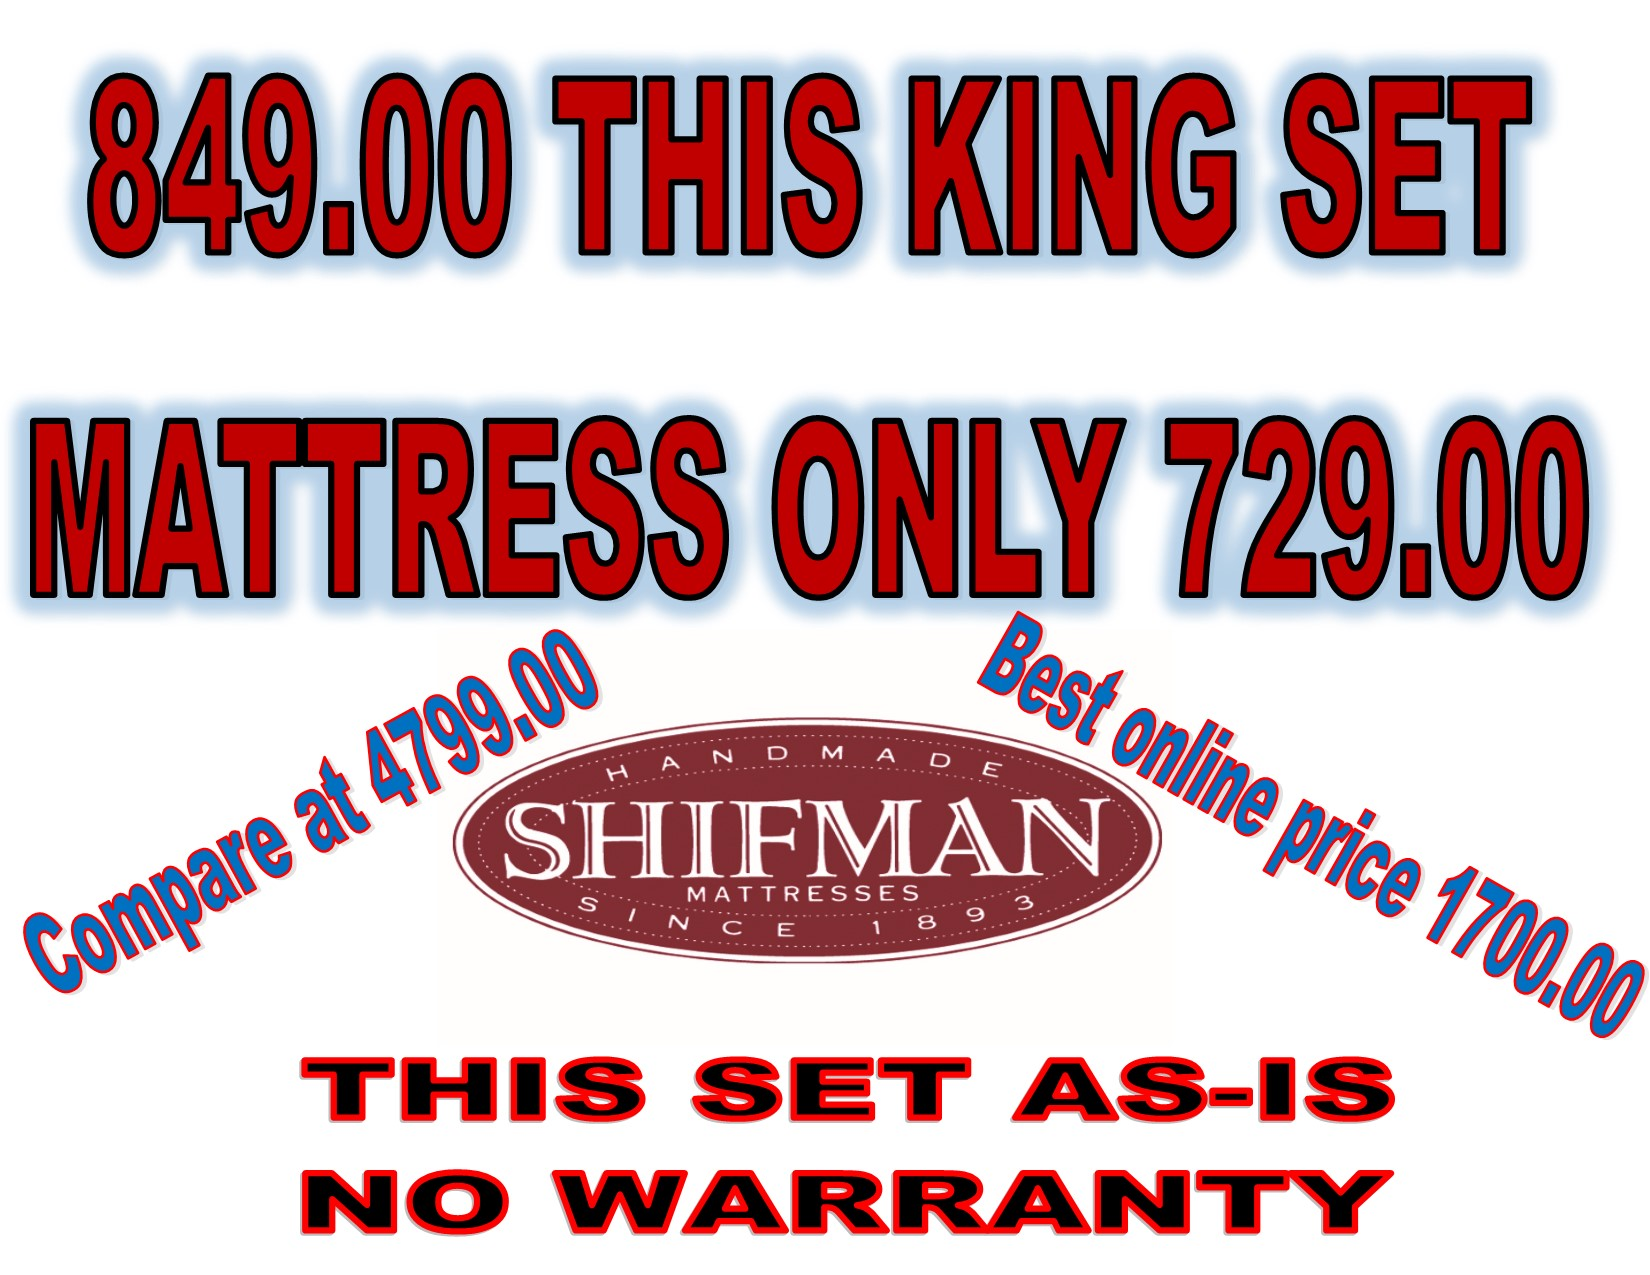 Mattress Deals image 80